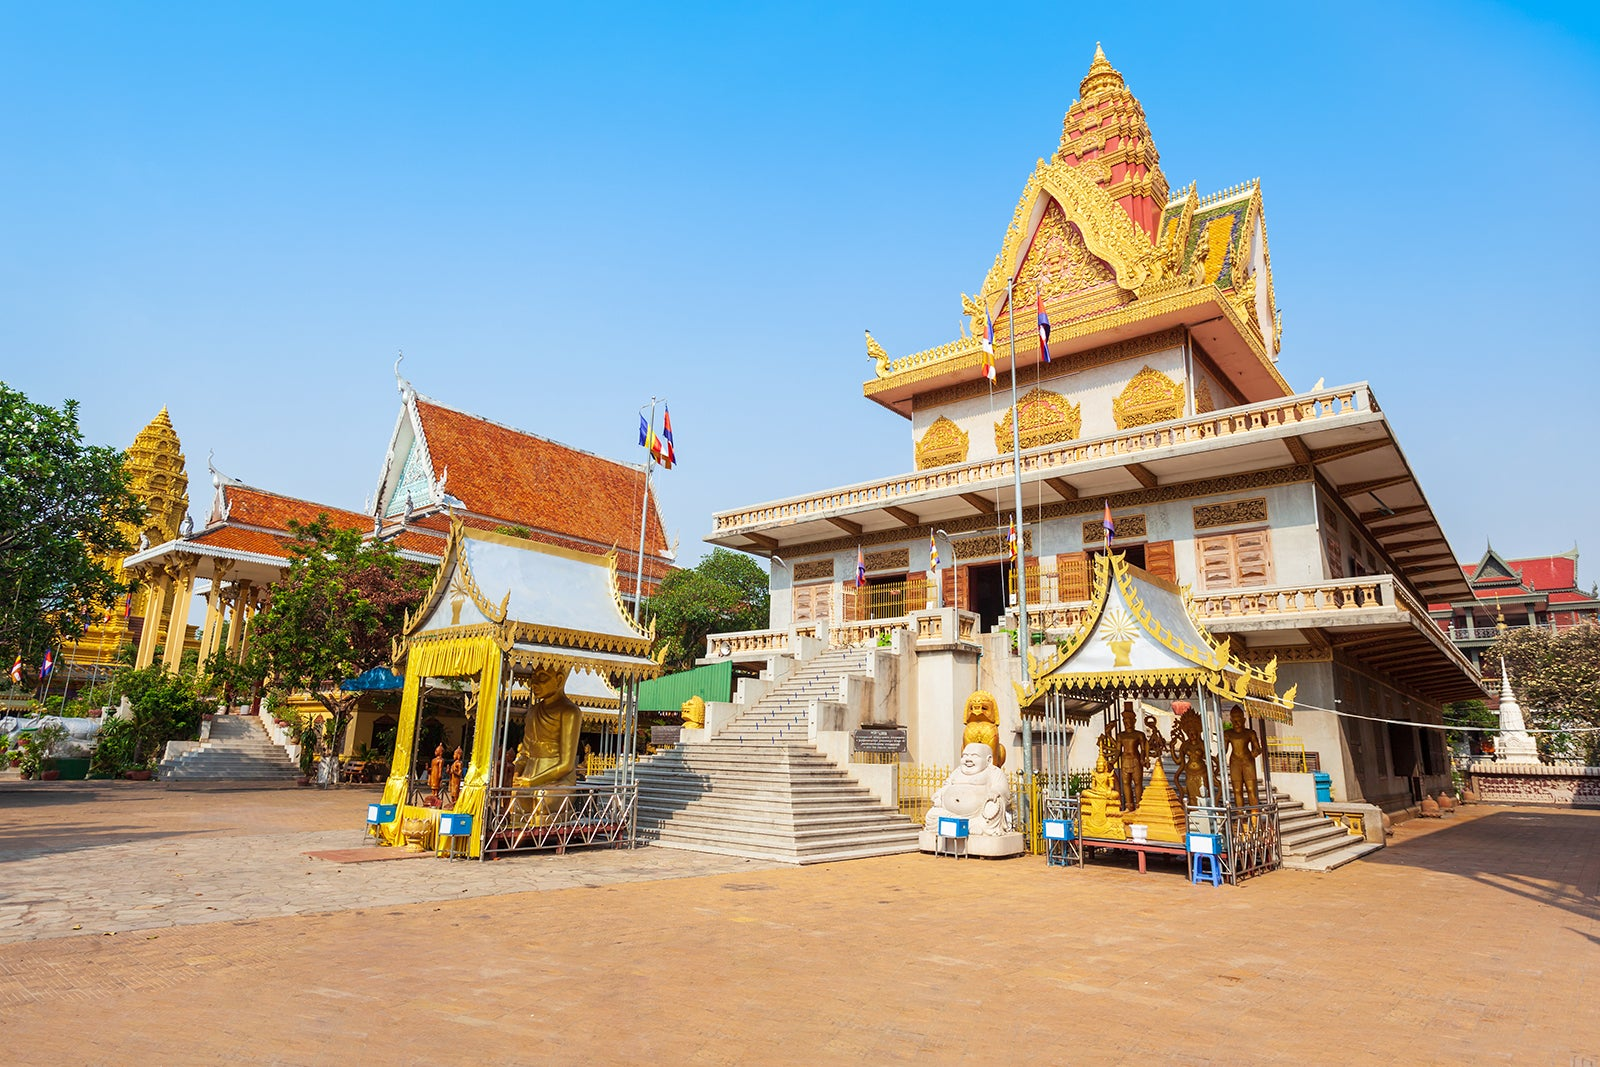 21 Best Things to Do in Phnom Penh - What is Phnom Penh Most